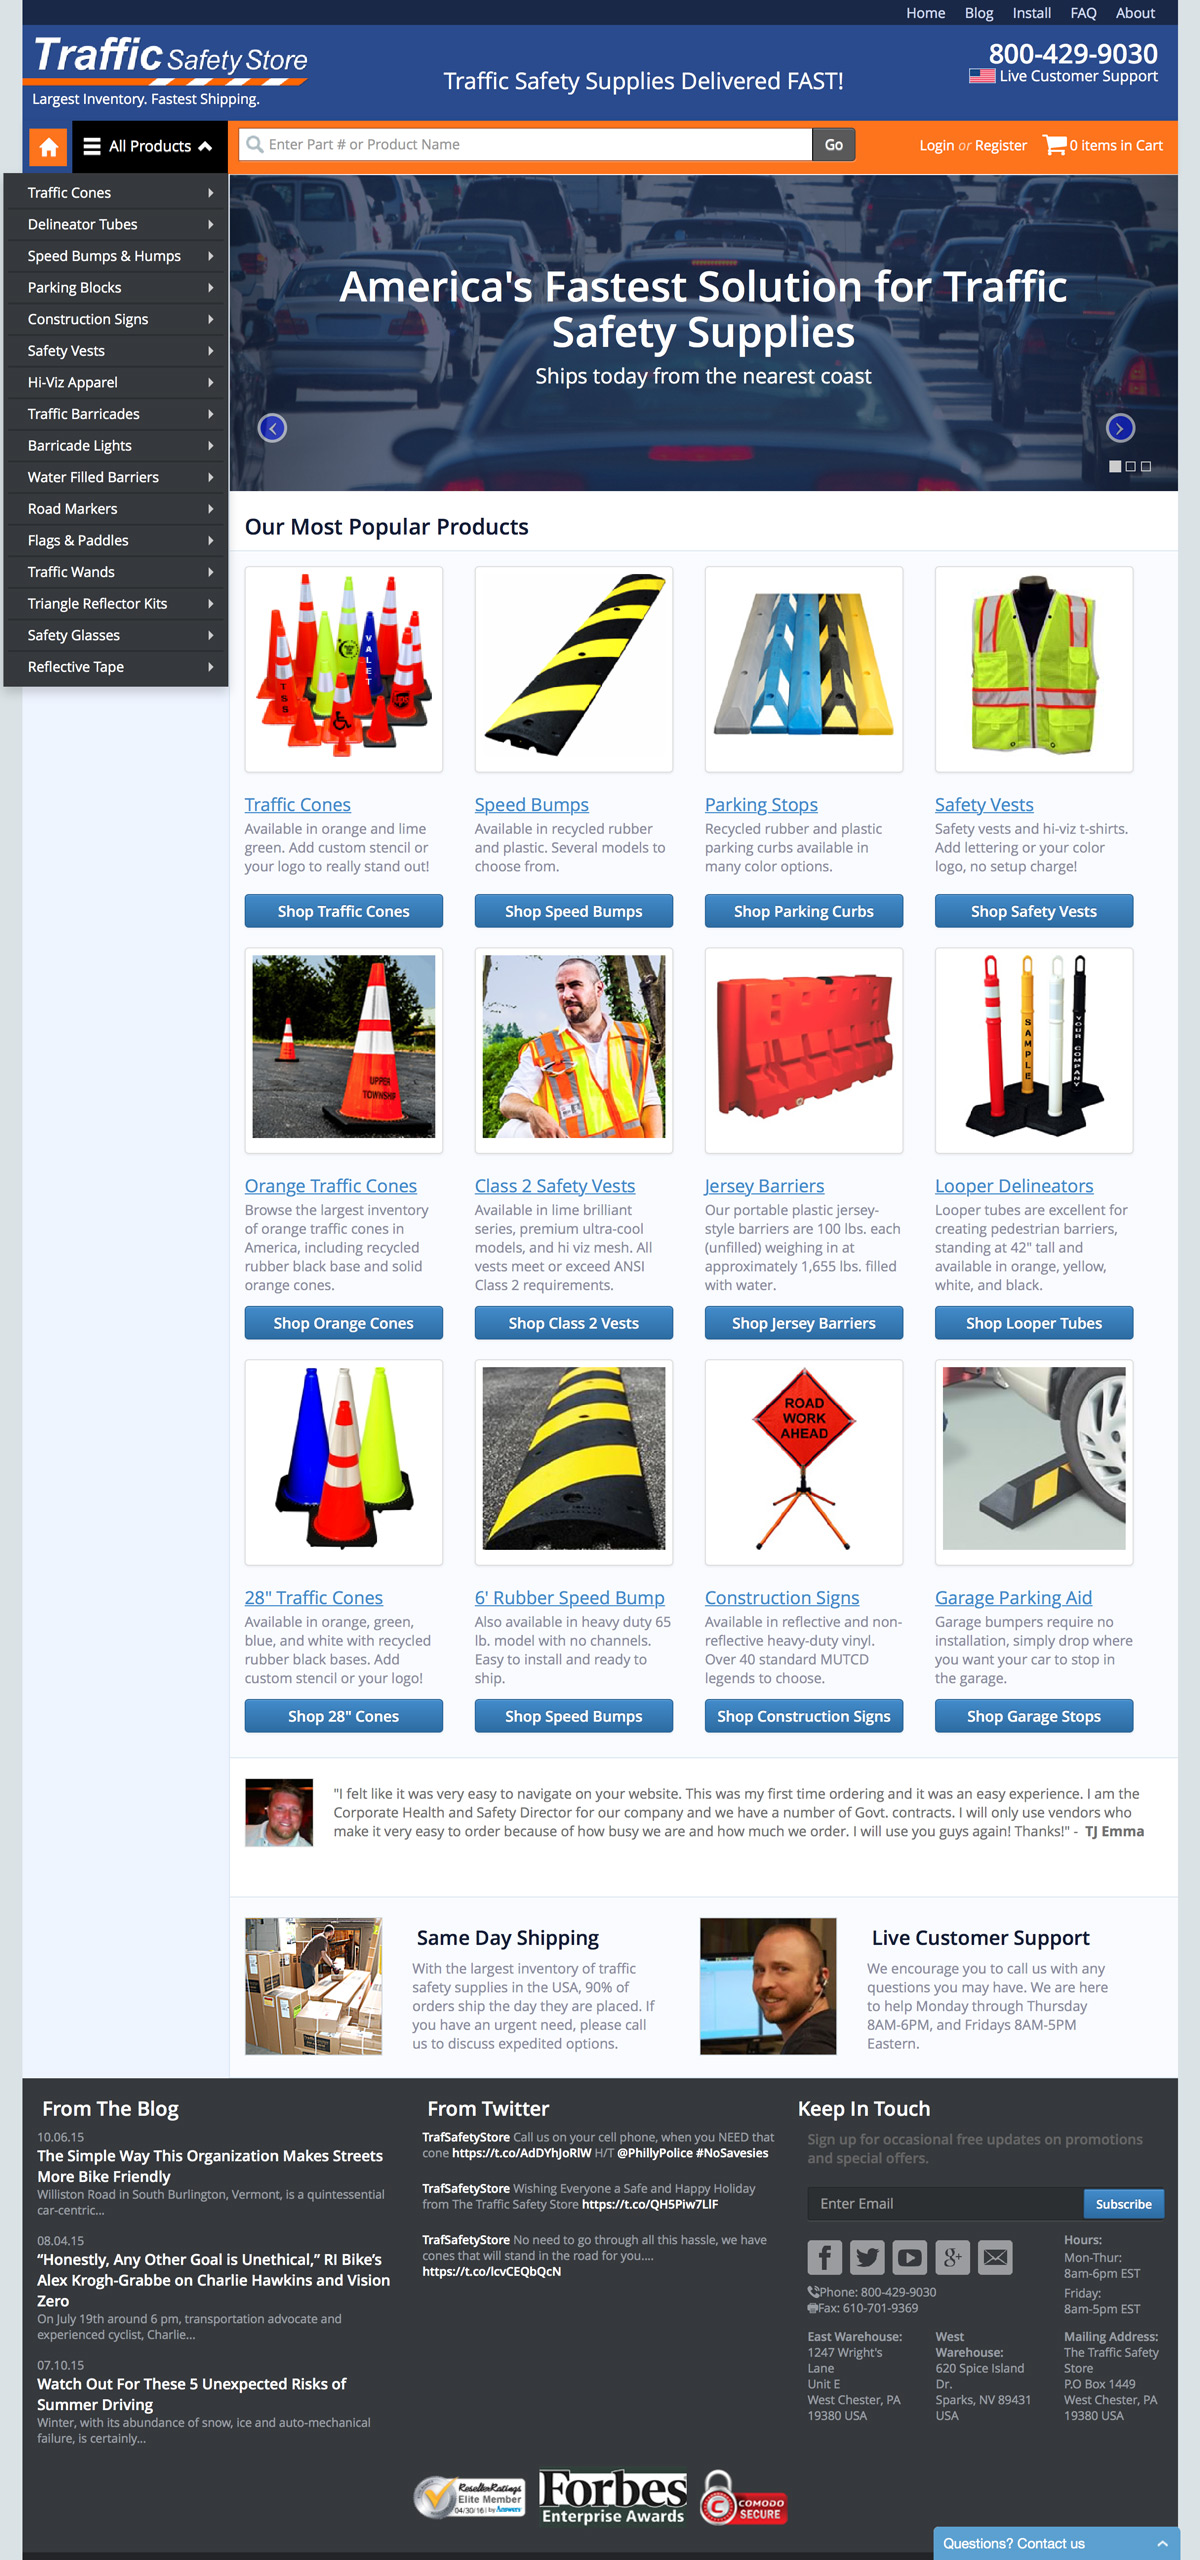 eCommerce website: Traffic Safety Store